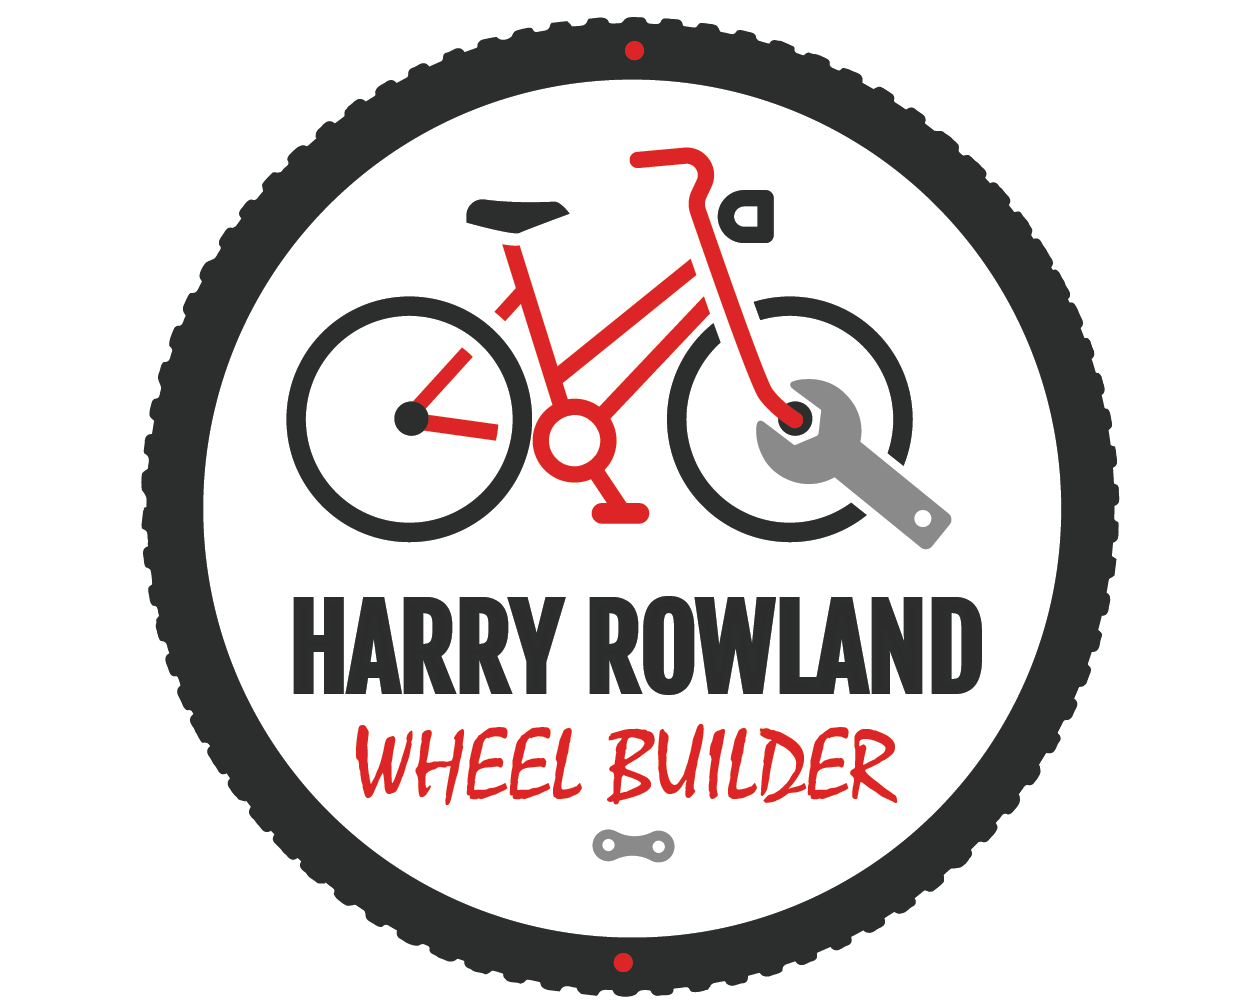 Harry Rowland Cycle Wheel Builder Kent